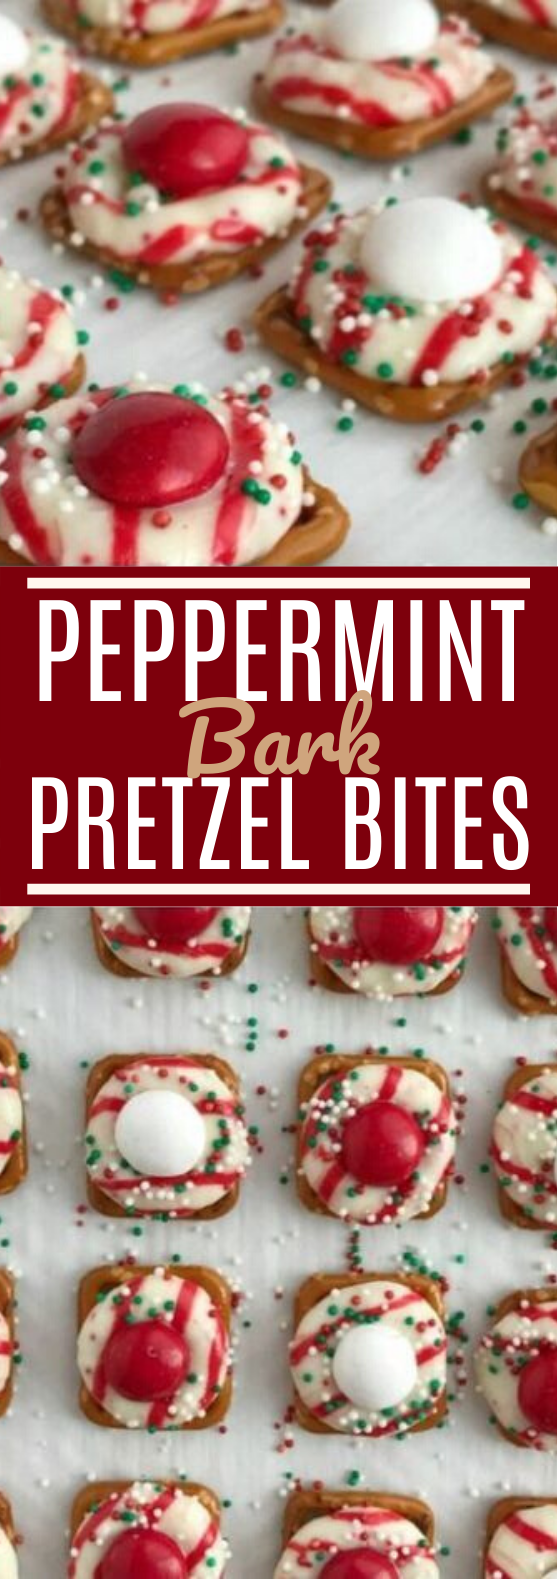 Peppermint Bark Pretzel Bites #desserts #recipes #candy #christmas #cookies